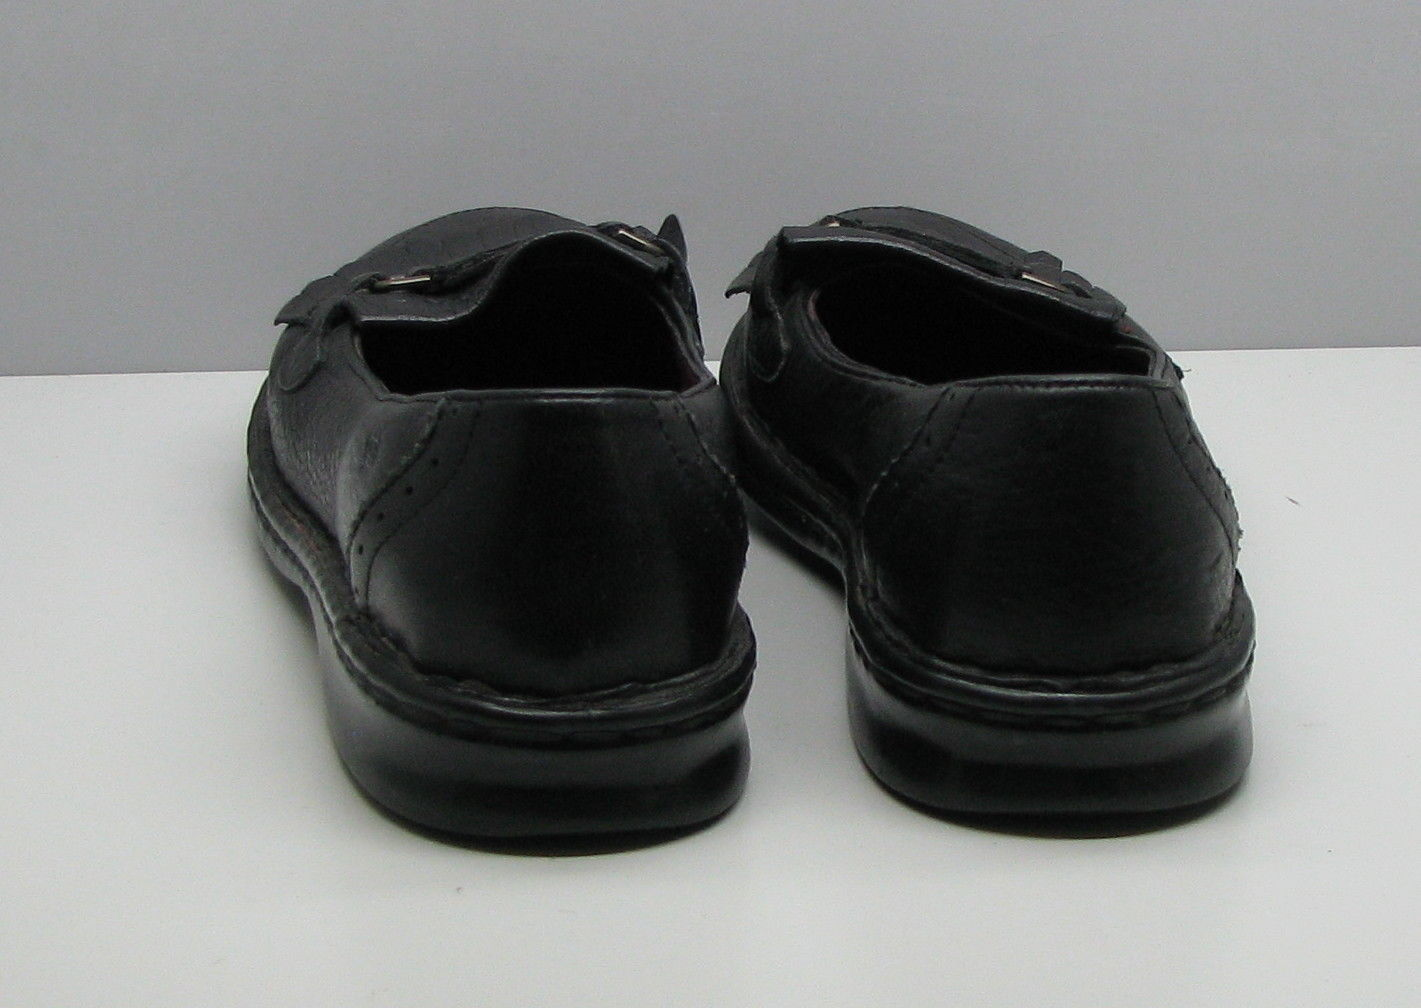 Born Black Leather SHOES Woman's 7 / 38 Loafers Tassel Flats